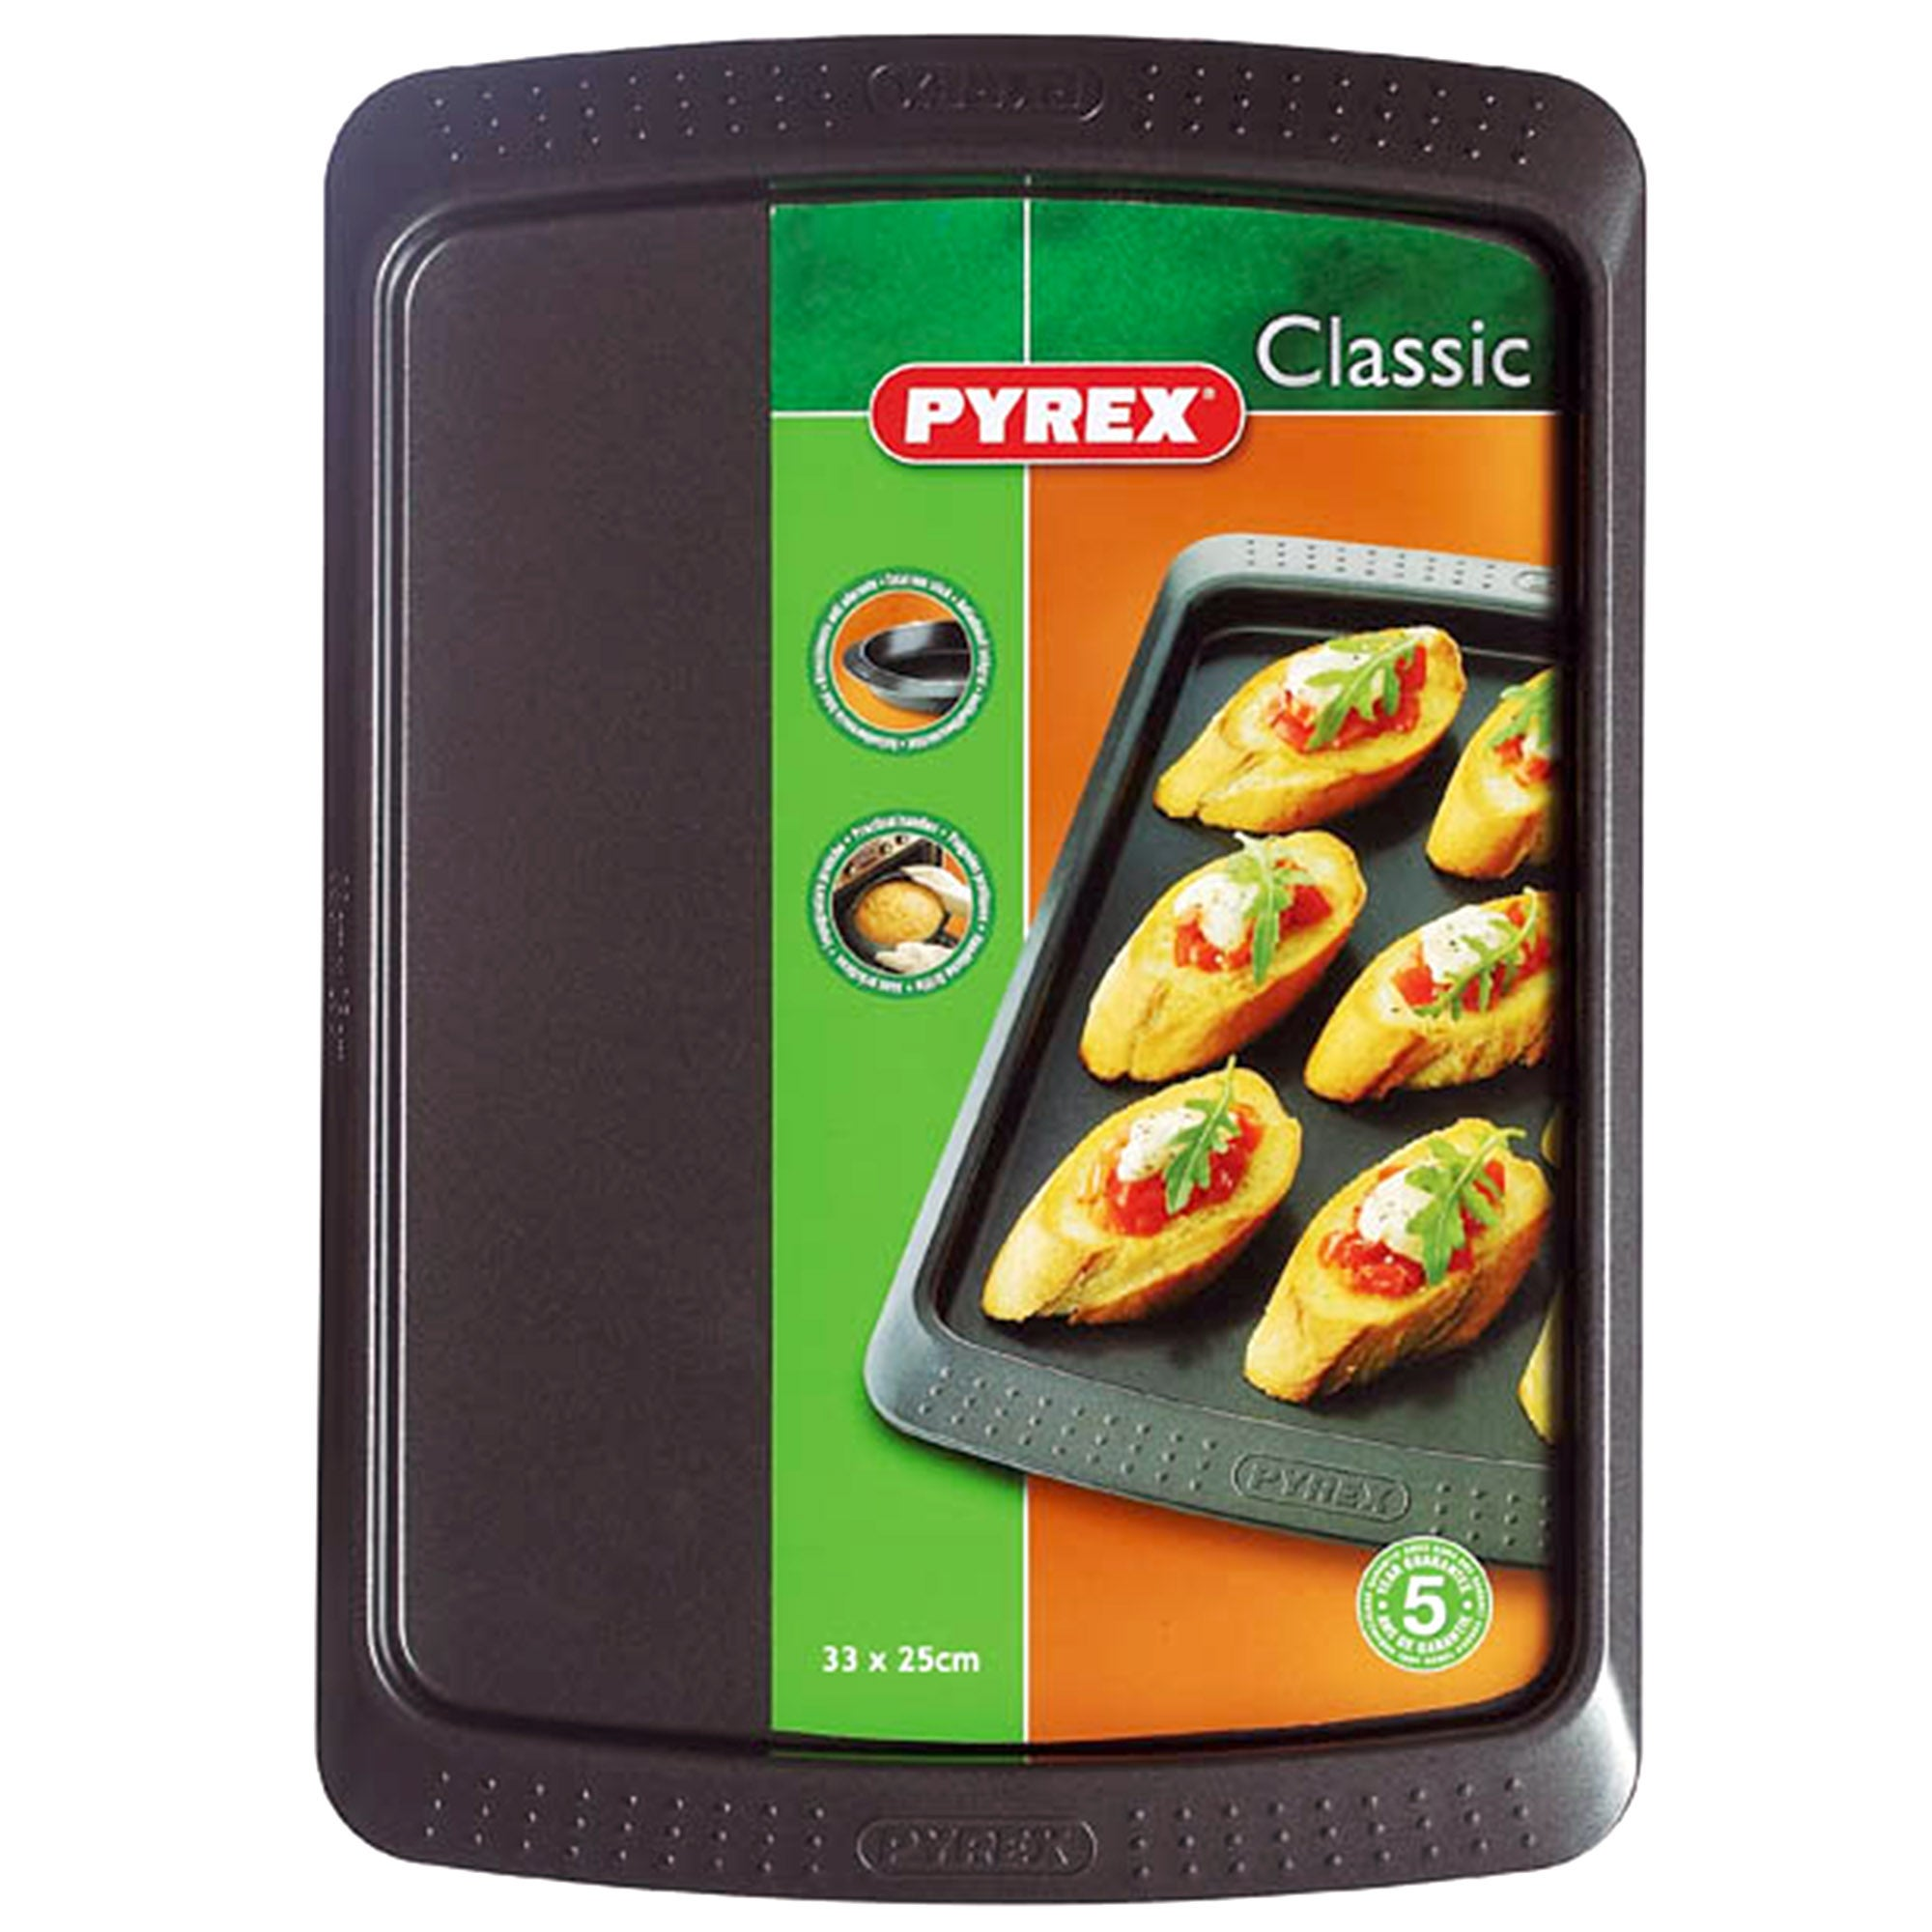 Pyrex Oven Tray